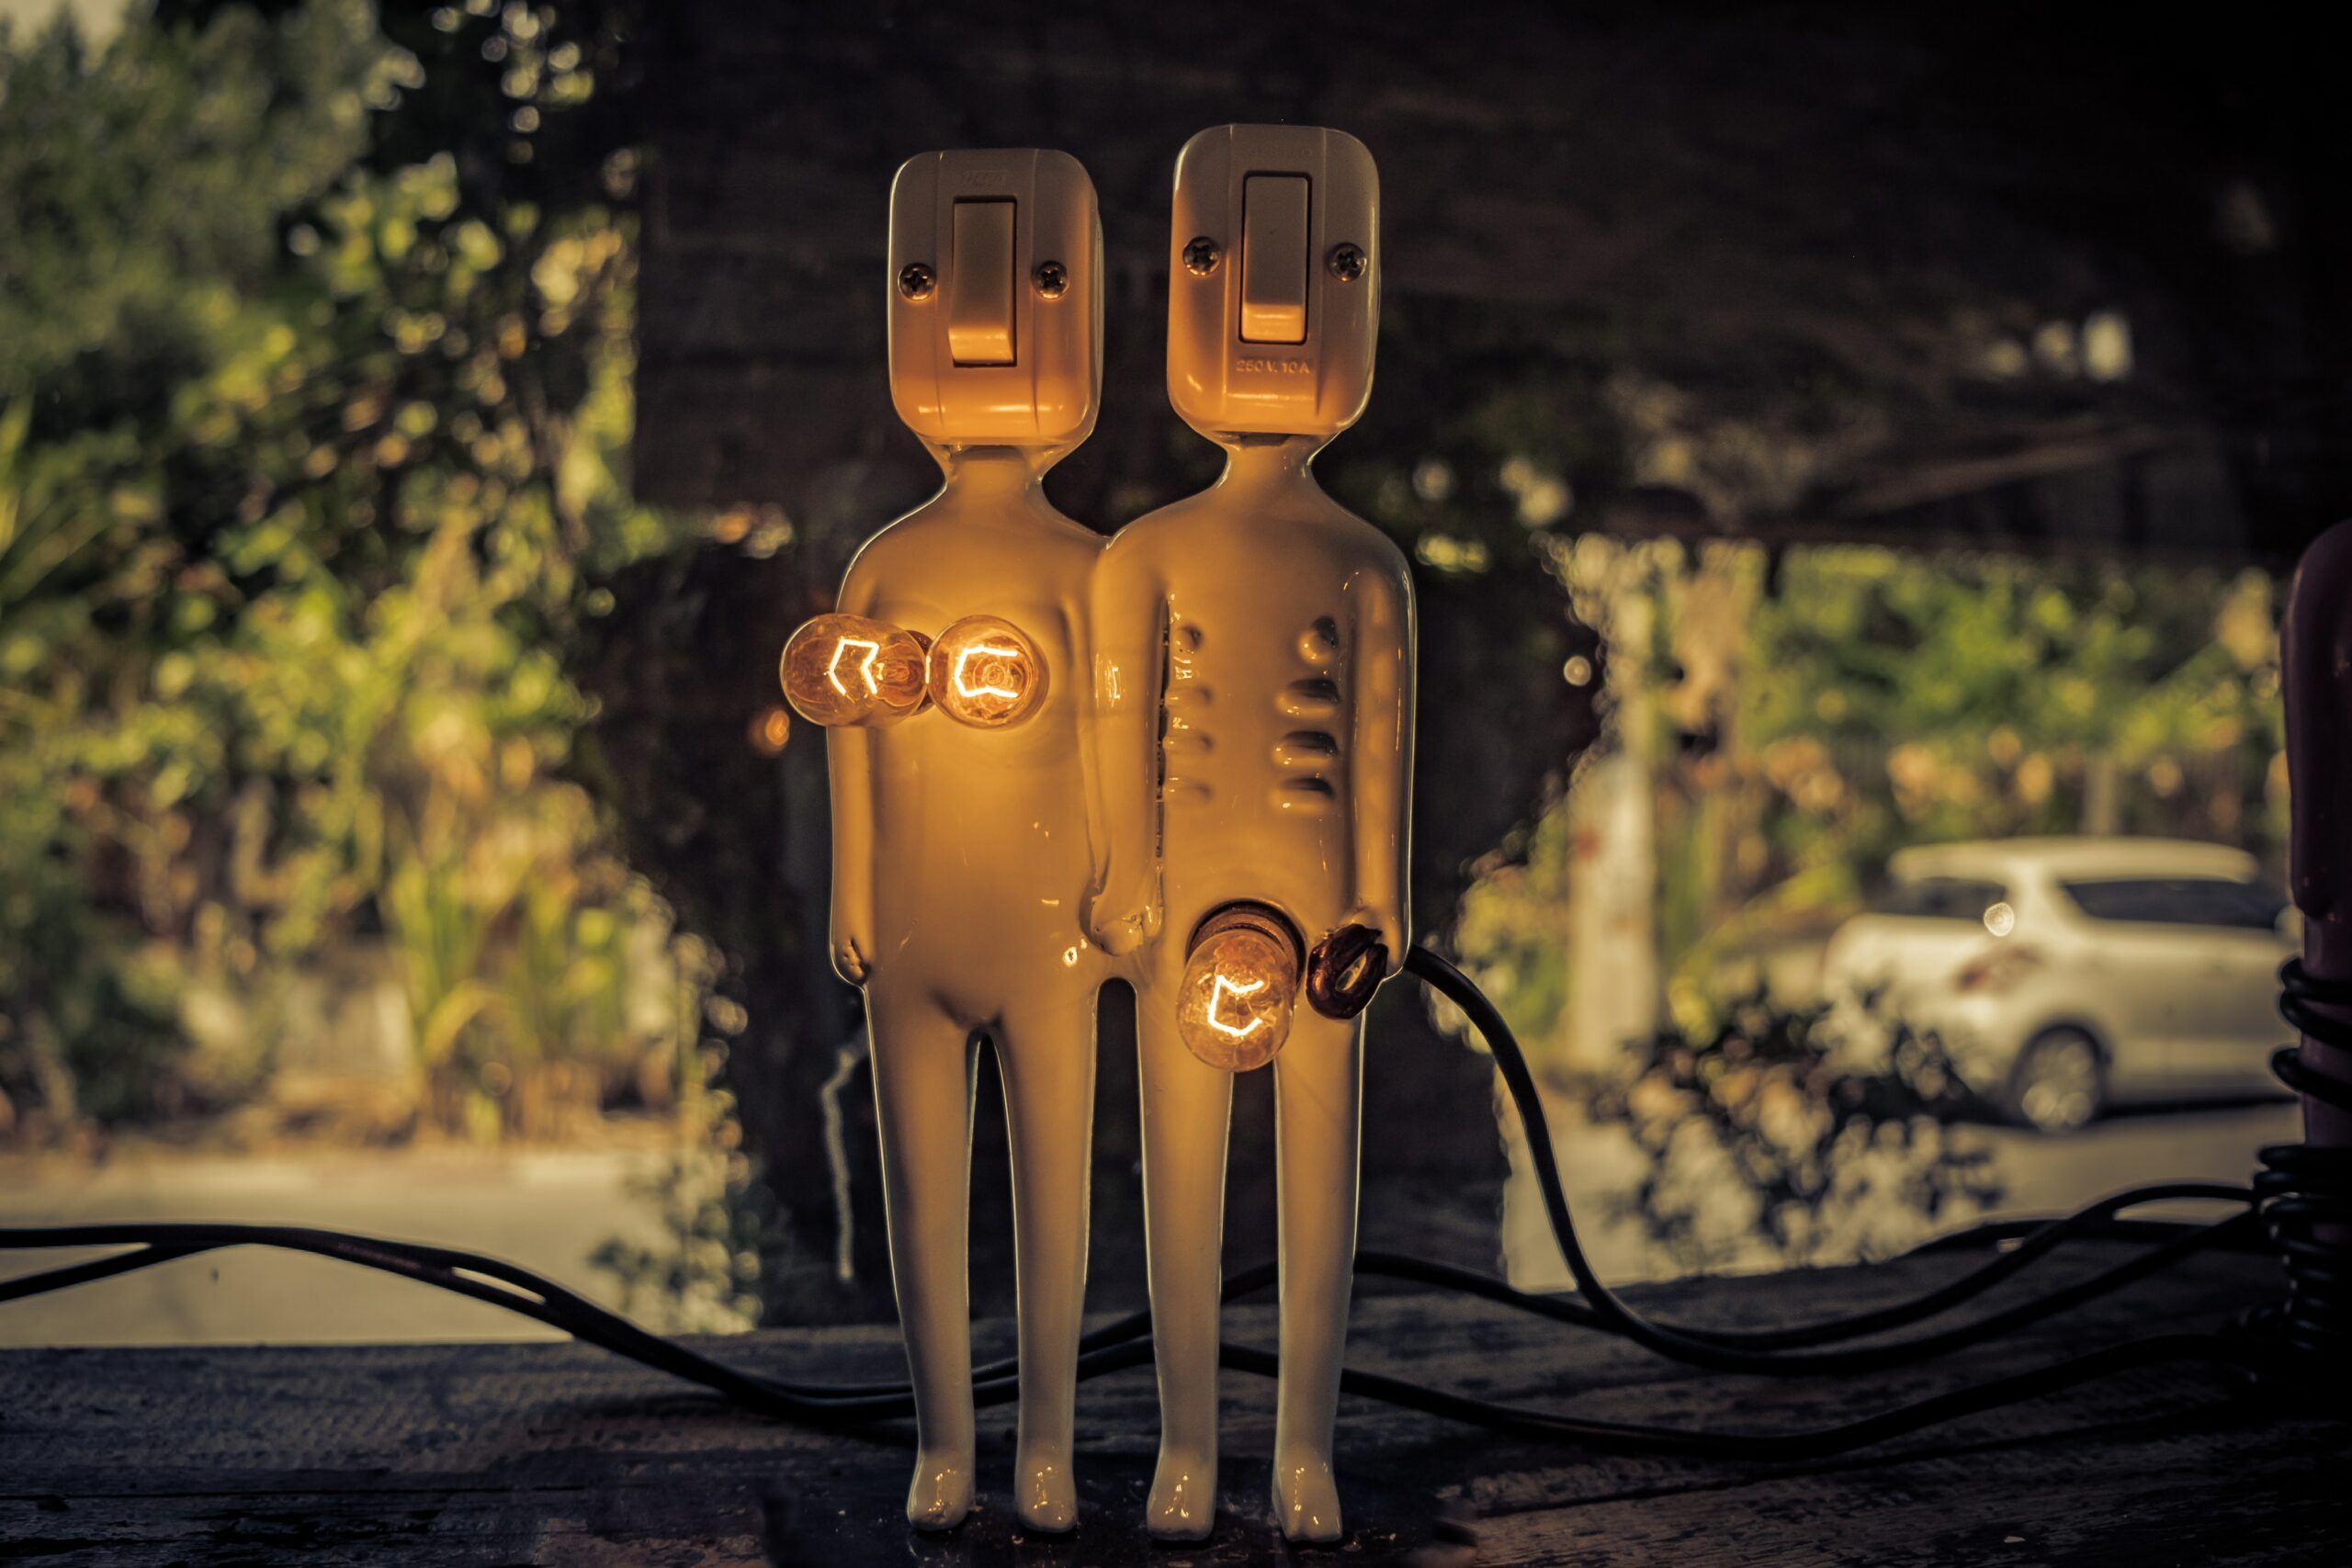 Can We Fall in Love with Robots?